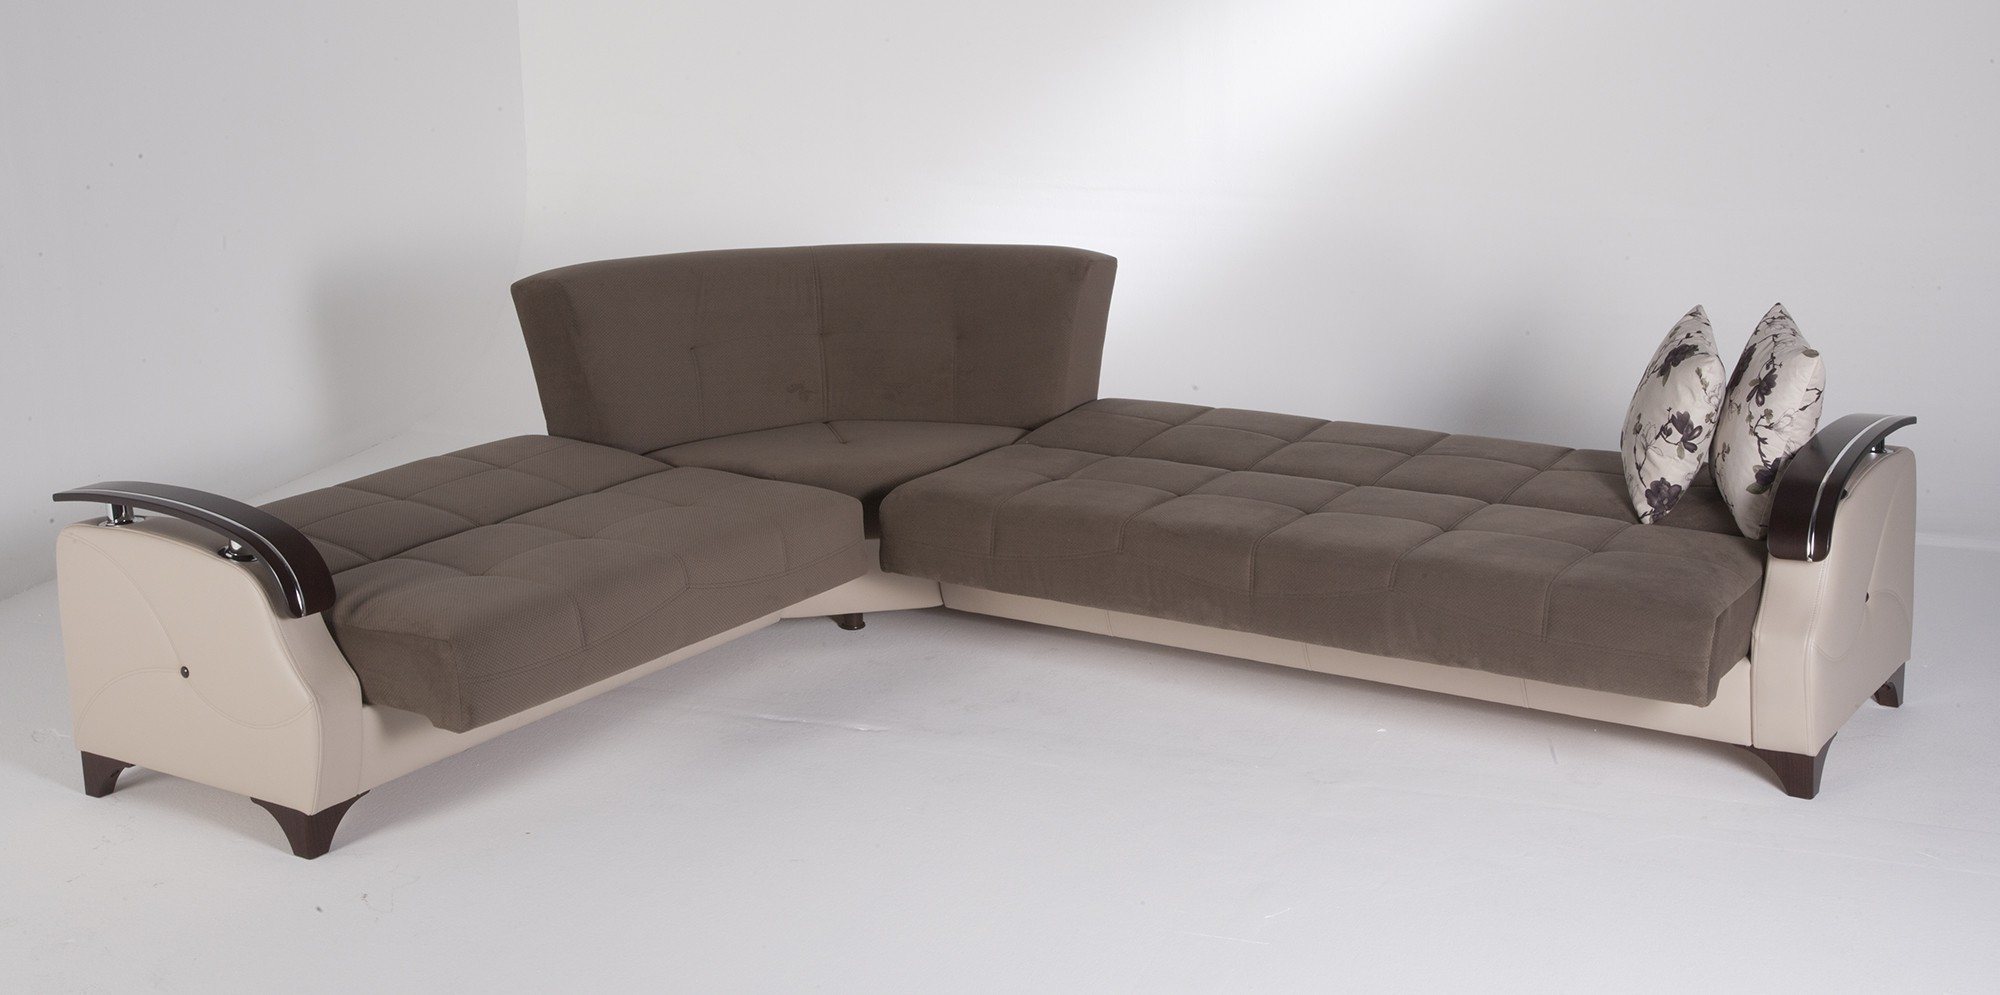 Sectional Sofas With Sleeper In Recent Sofas : Sofa Couch Convertible Sofa Sofas And Sectionals Sectional (View 20 of 20)